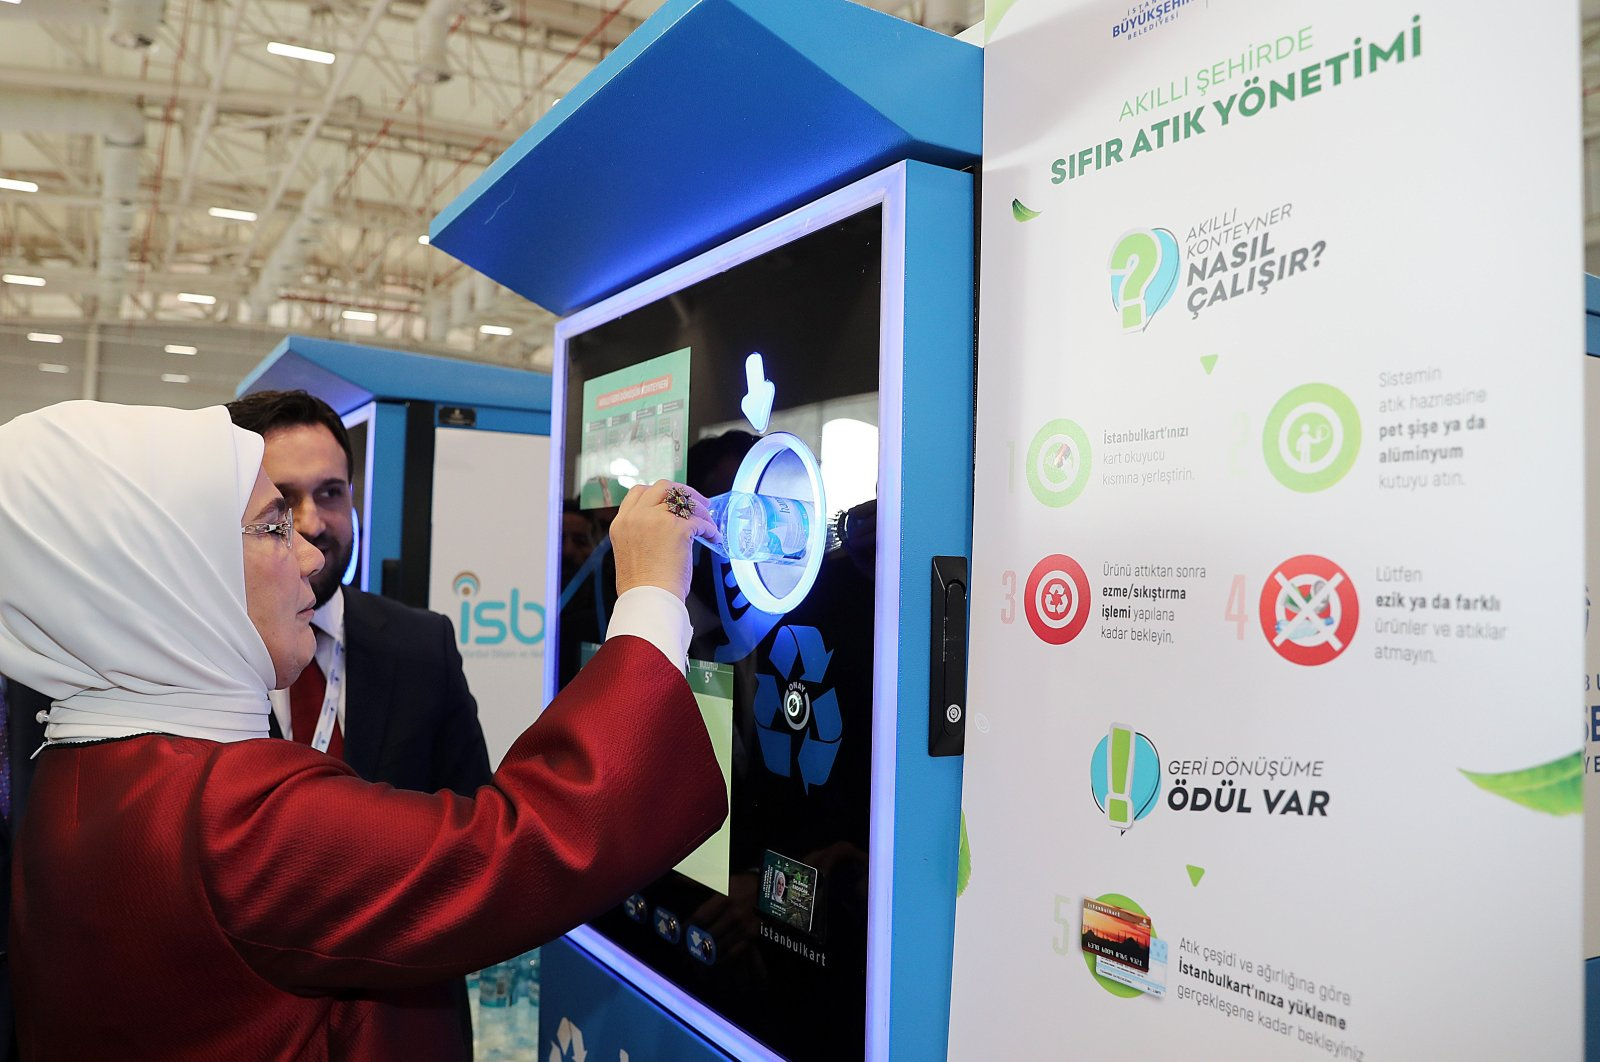 First lady Emine Erdoğan disposes of a bottle in a recycling machine at an environment-focused fair in Istanbul's Avrasya Exhibition and Arts Center, Turkey, Dec. 10, 2018. (AA File Photo)